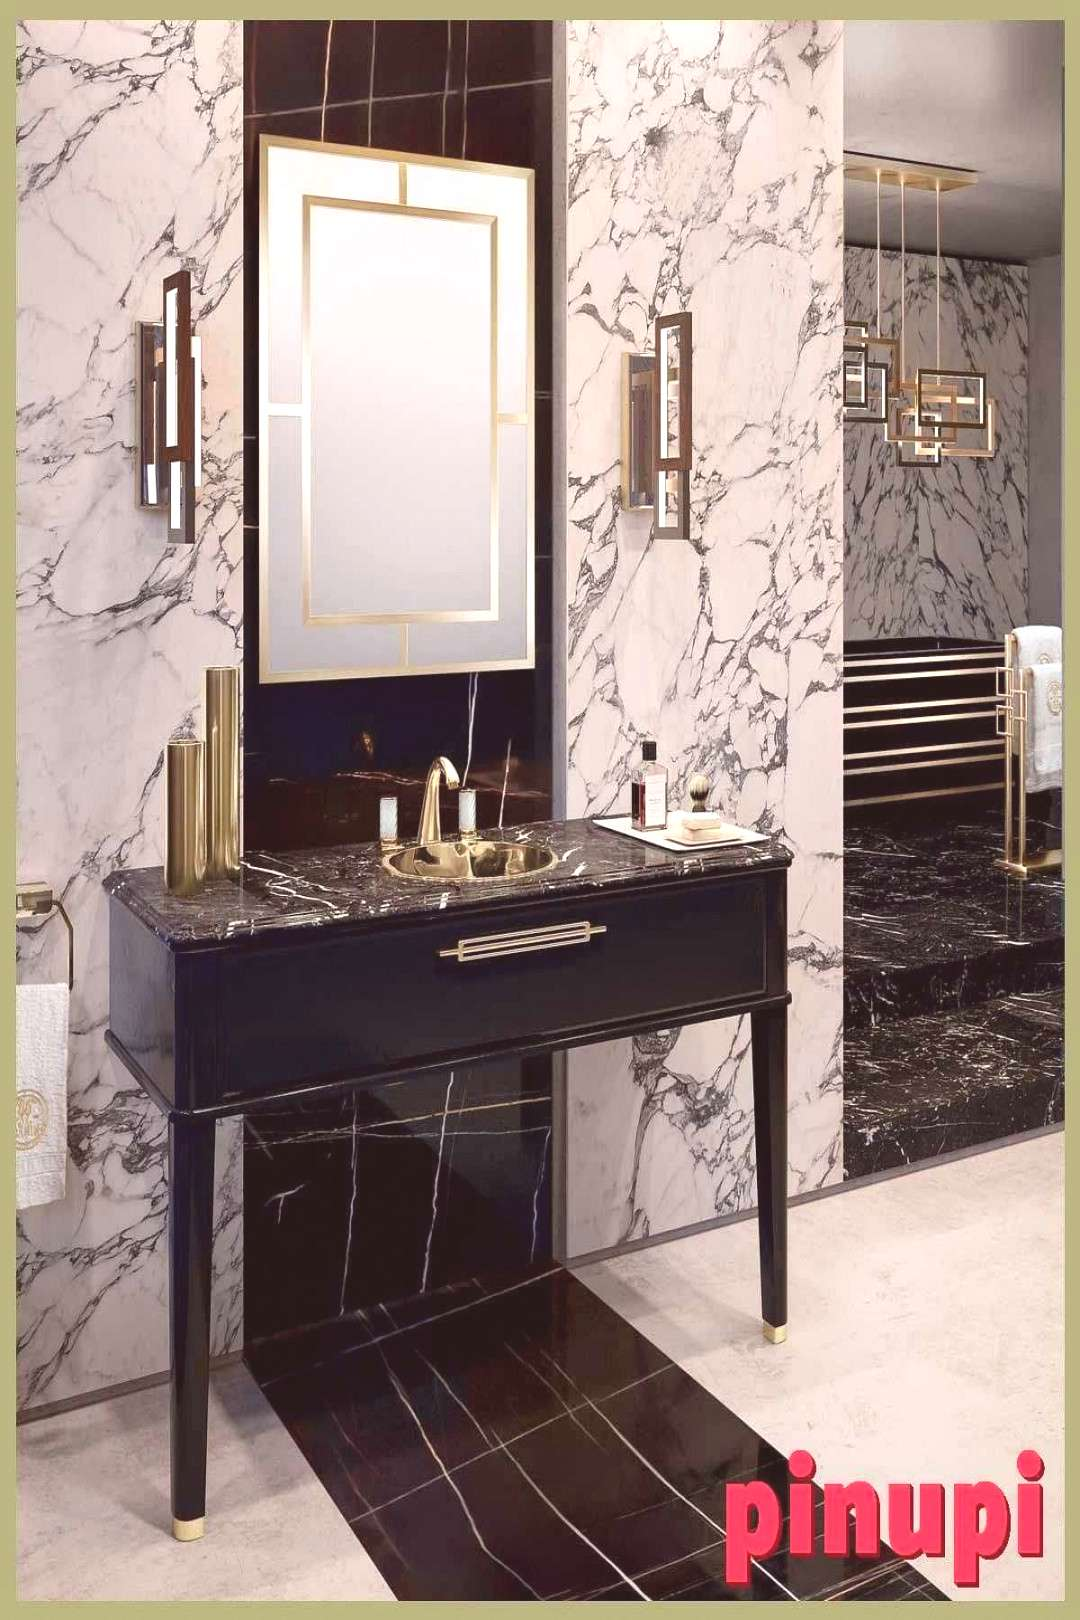 Collection By Oasis Luxury Bathroom Furniture Riviere Collection By Oasis Luxury Bathroom Furniture